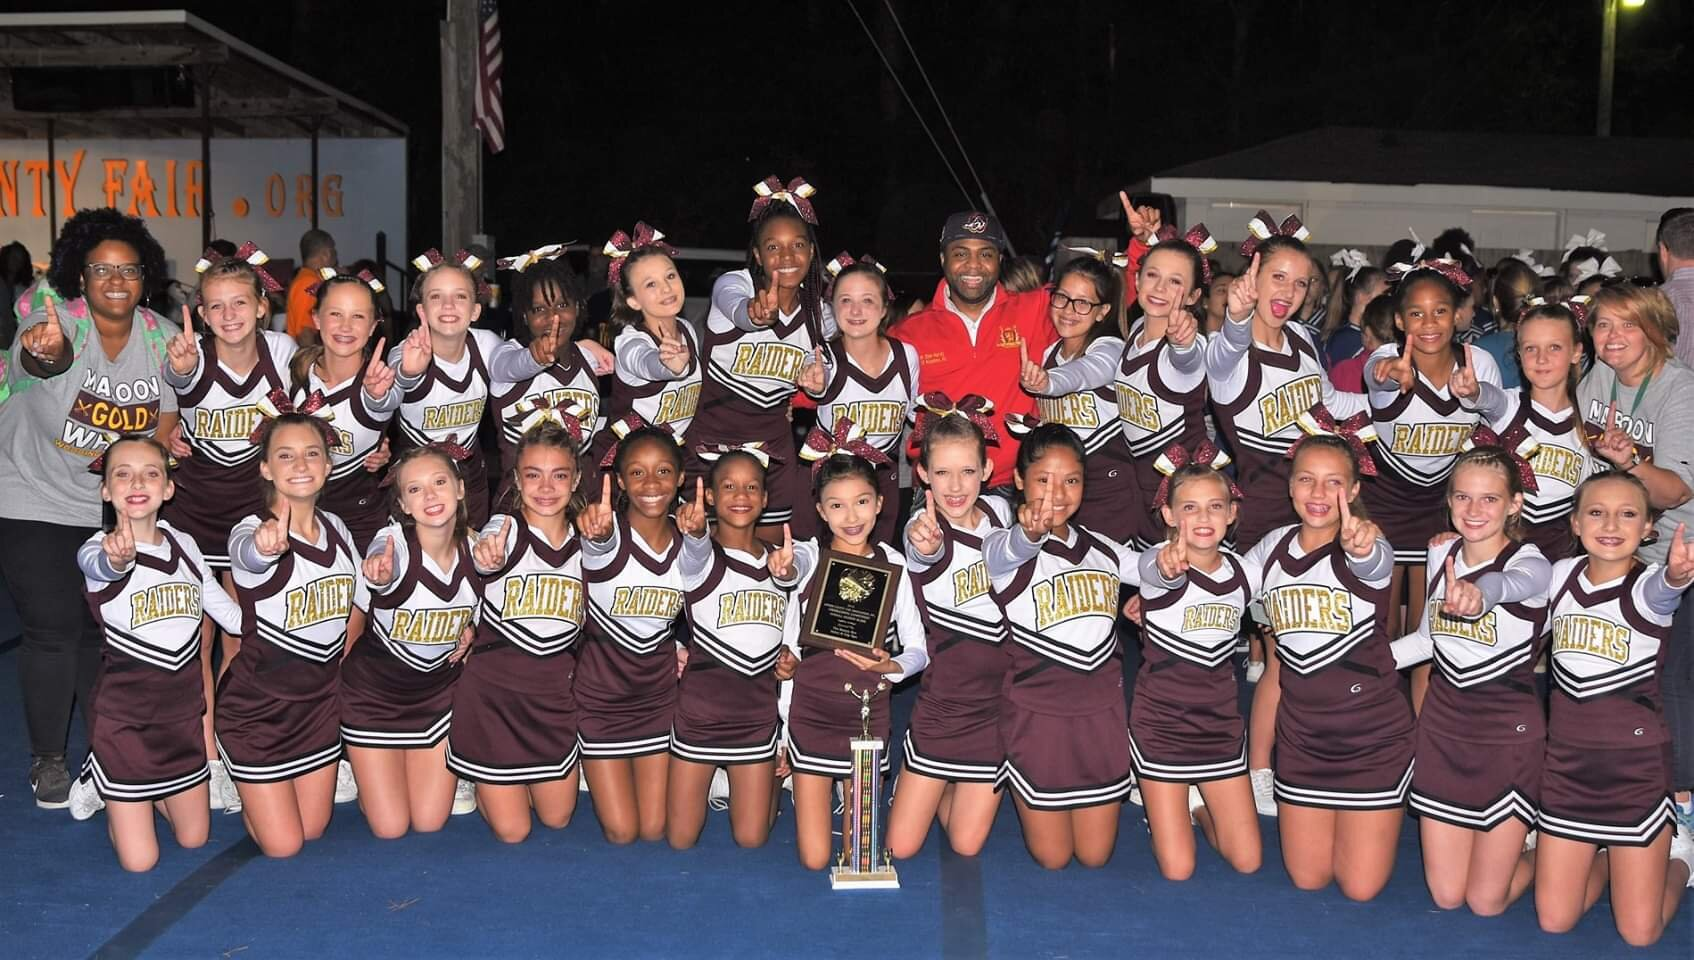 Woodington had the highest overall score in the 36th annual Lenoir County Agricultural Fair Cheerleading Competition on the way to the middle school crown. The Raiders celebrate their win with Kinston mayor Don Hardy. Photo by William 'Bud' Hardy / Neuse News